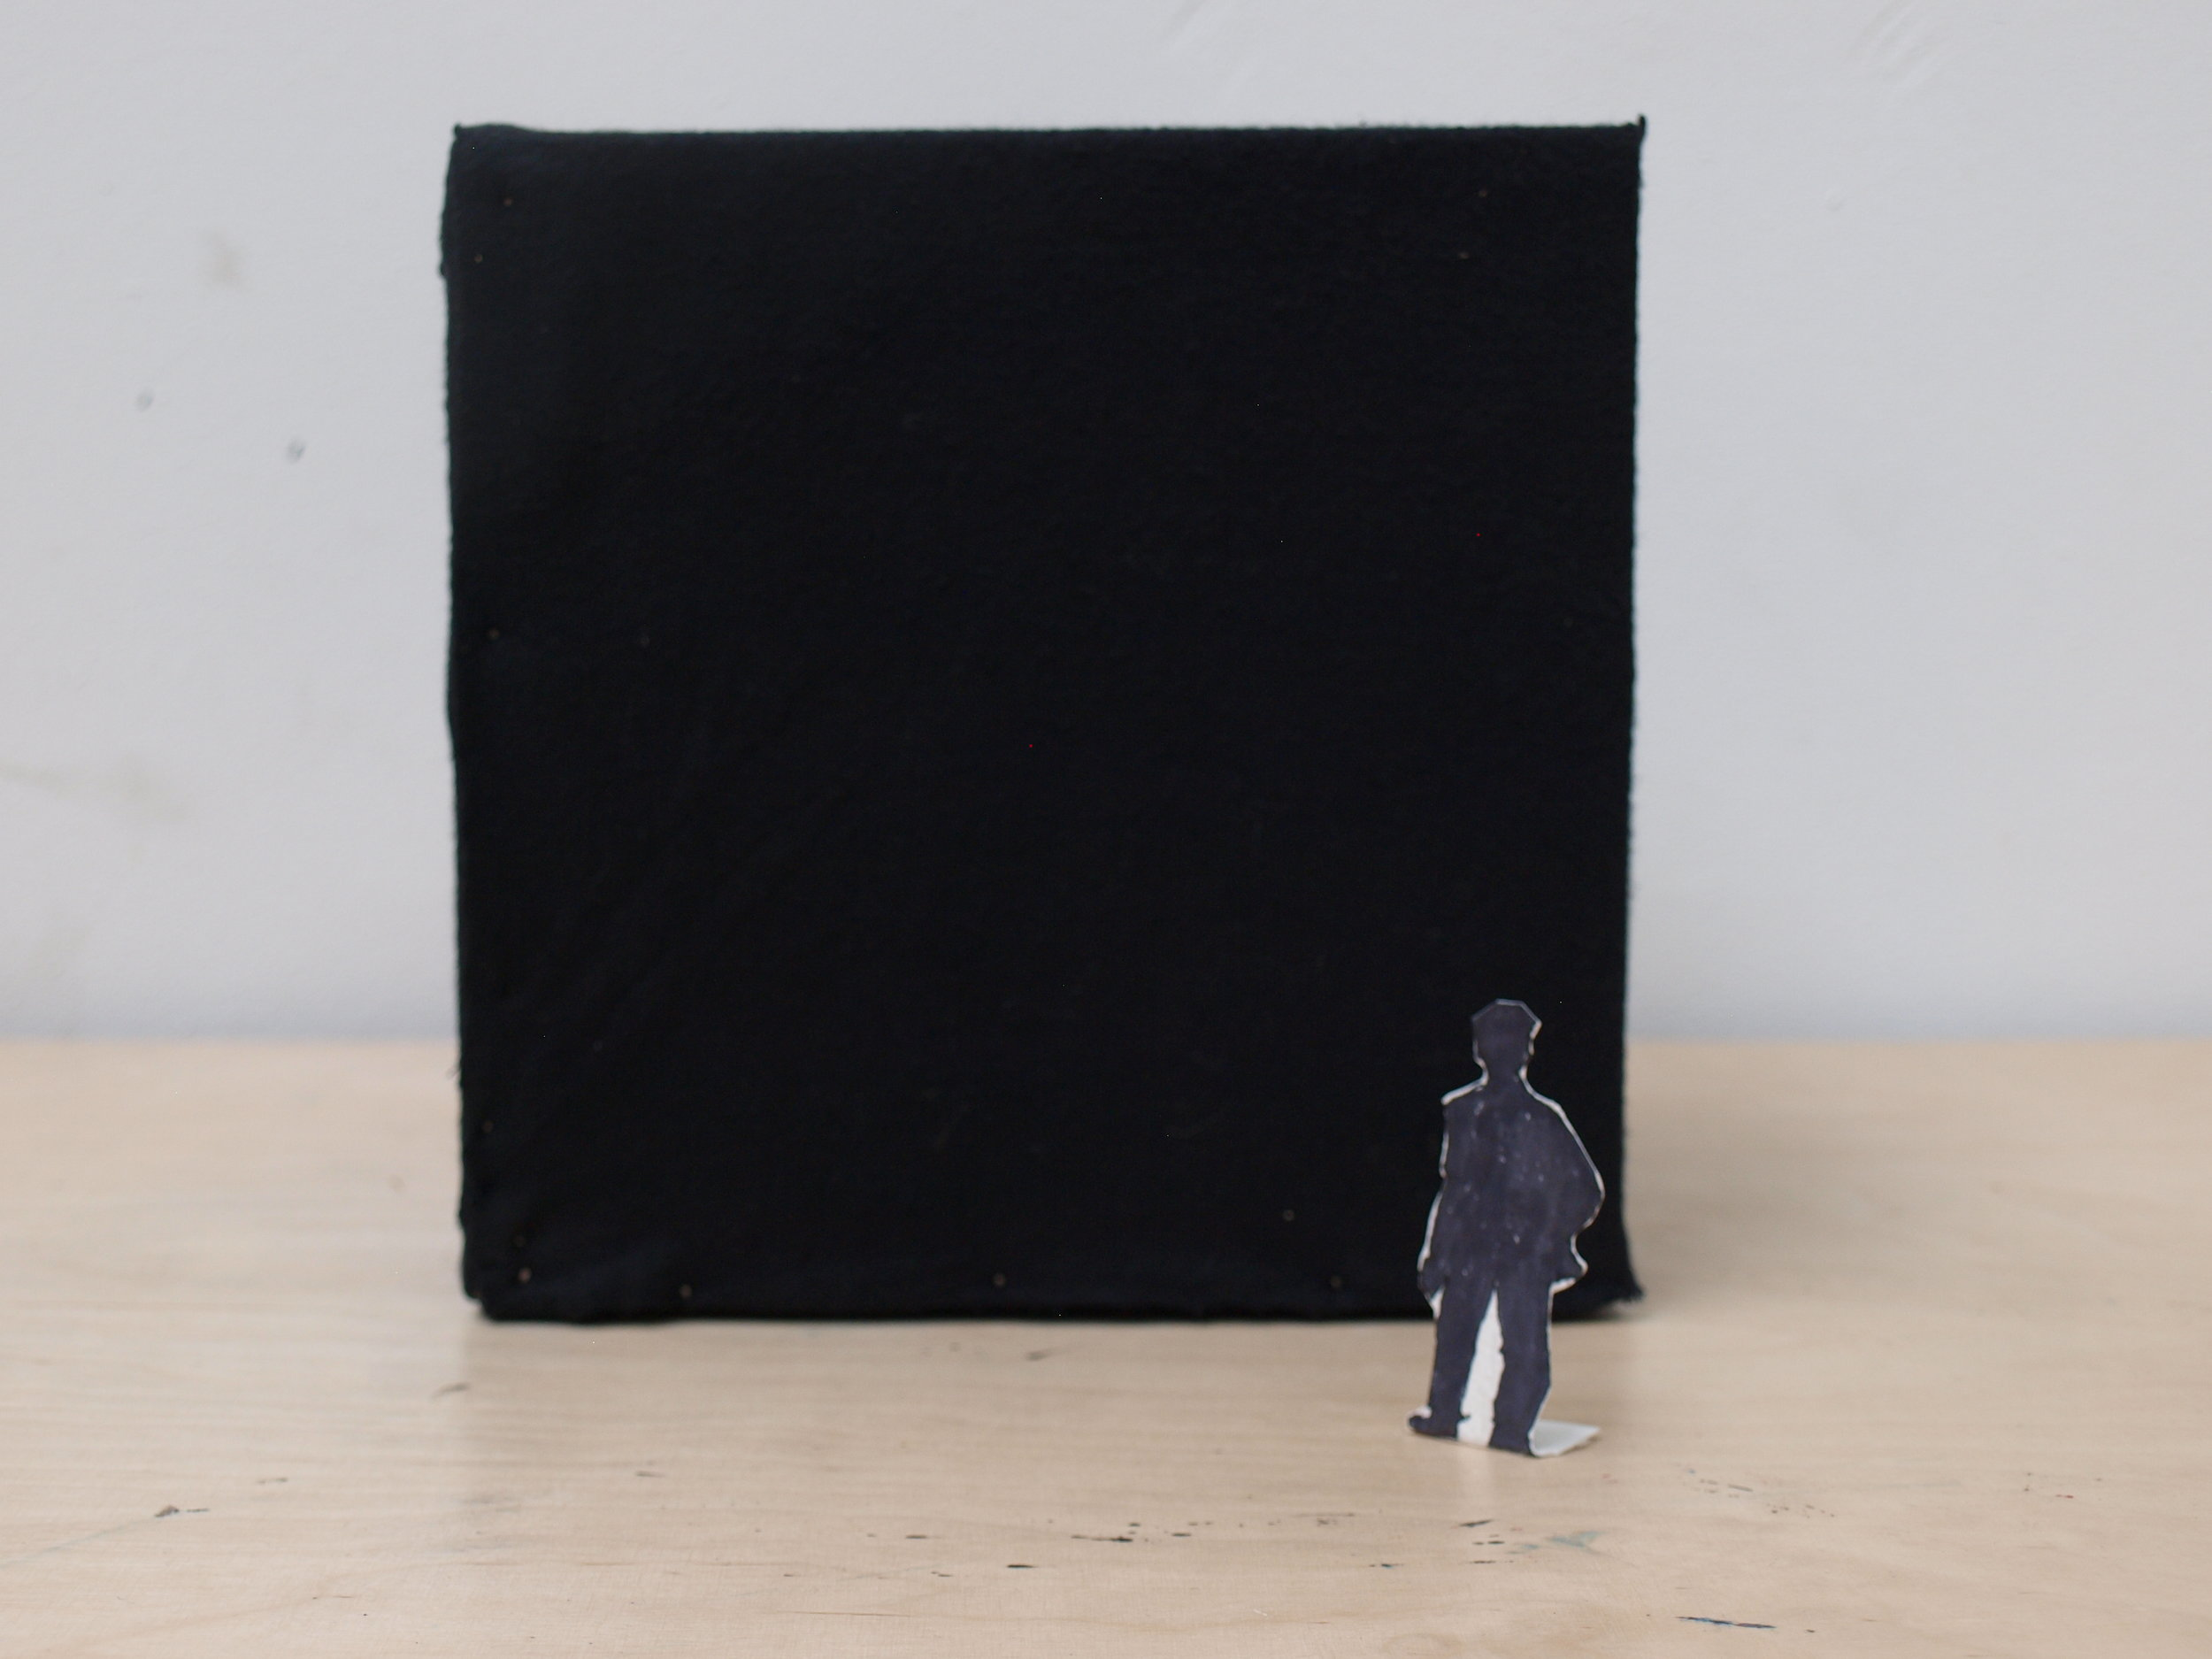 Scale model of black cube Renaissance of Wonder scale 1:26,2 2016